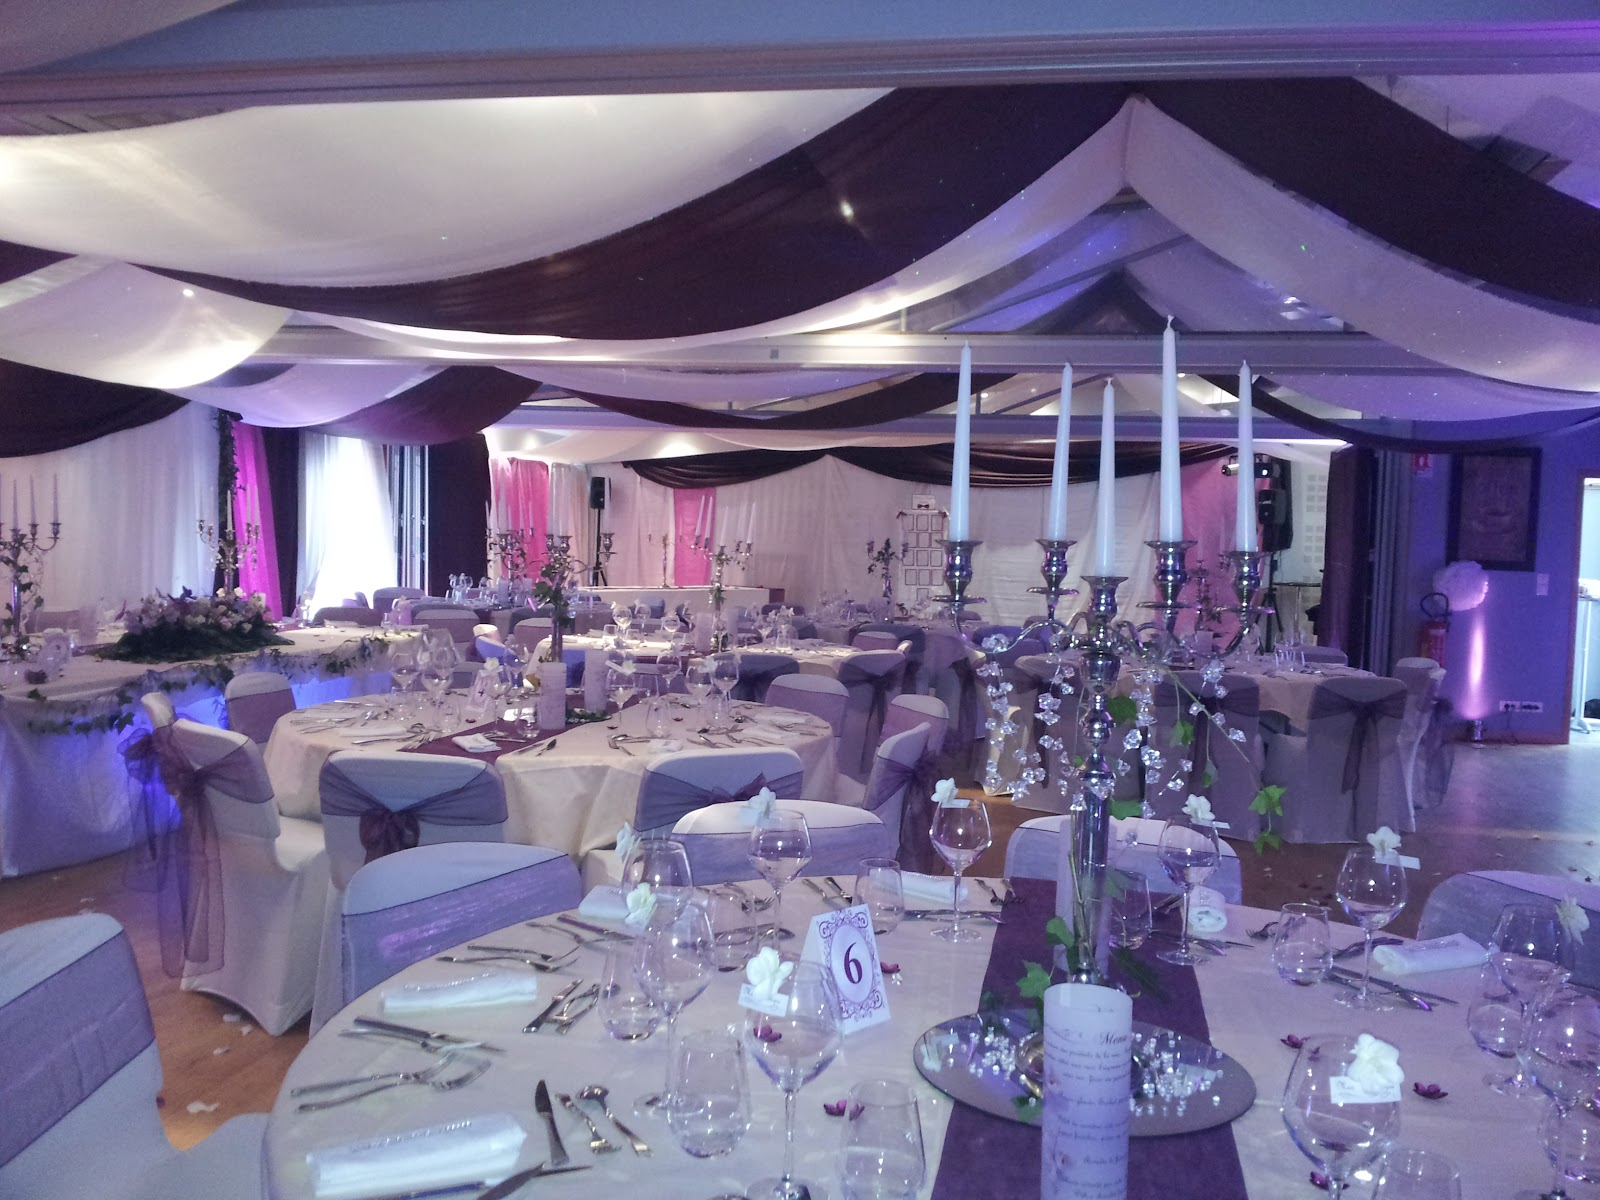 Tentures mariage tentures salles mariages - Decoration mur salle mariage ...